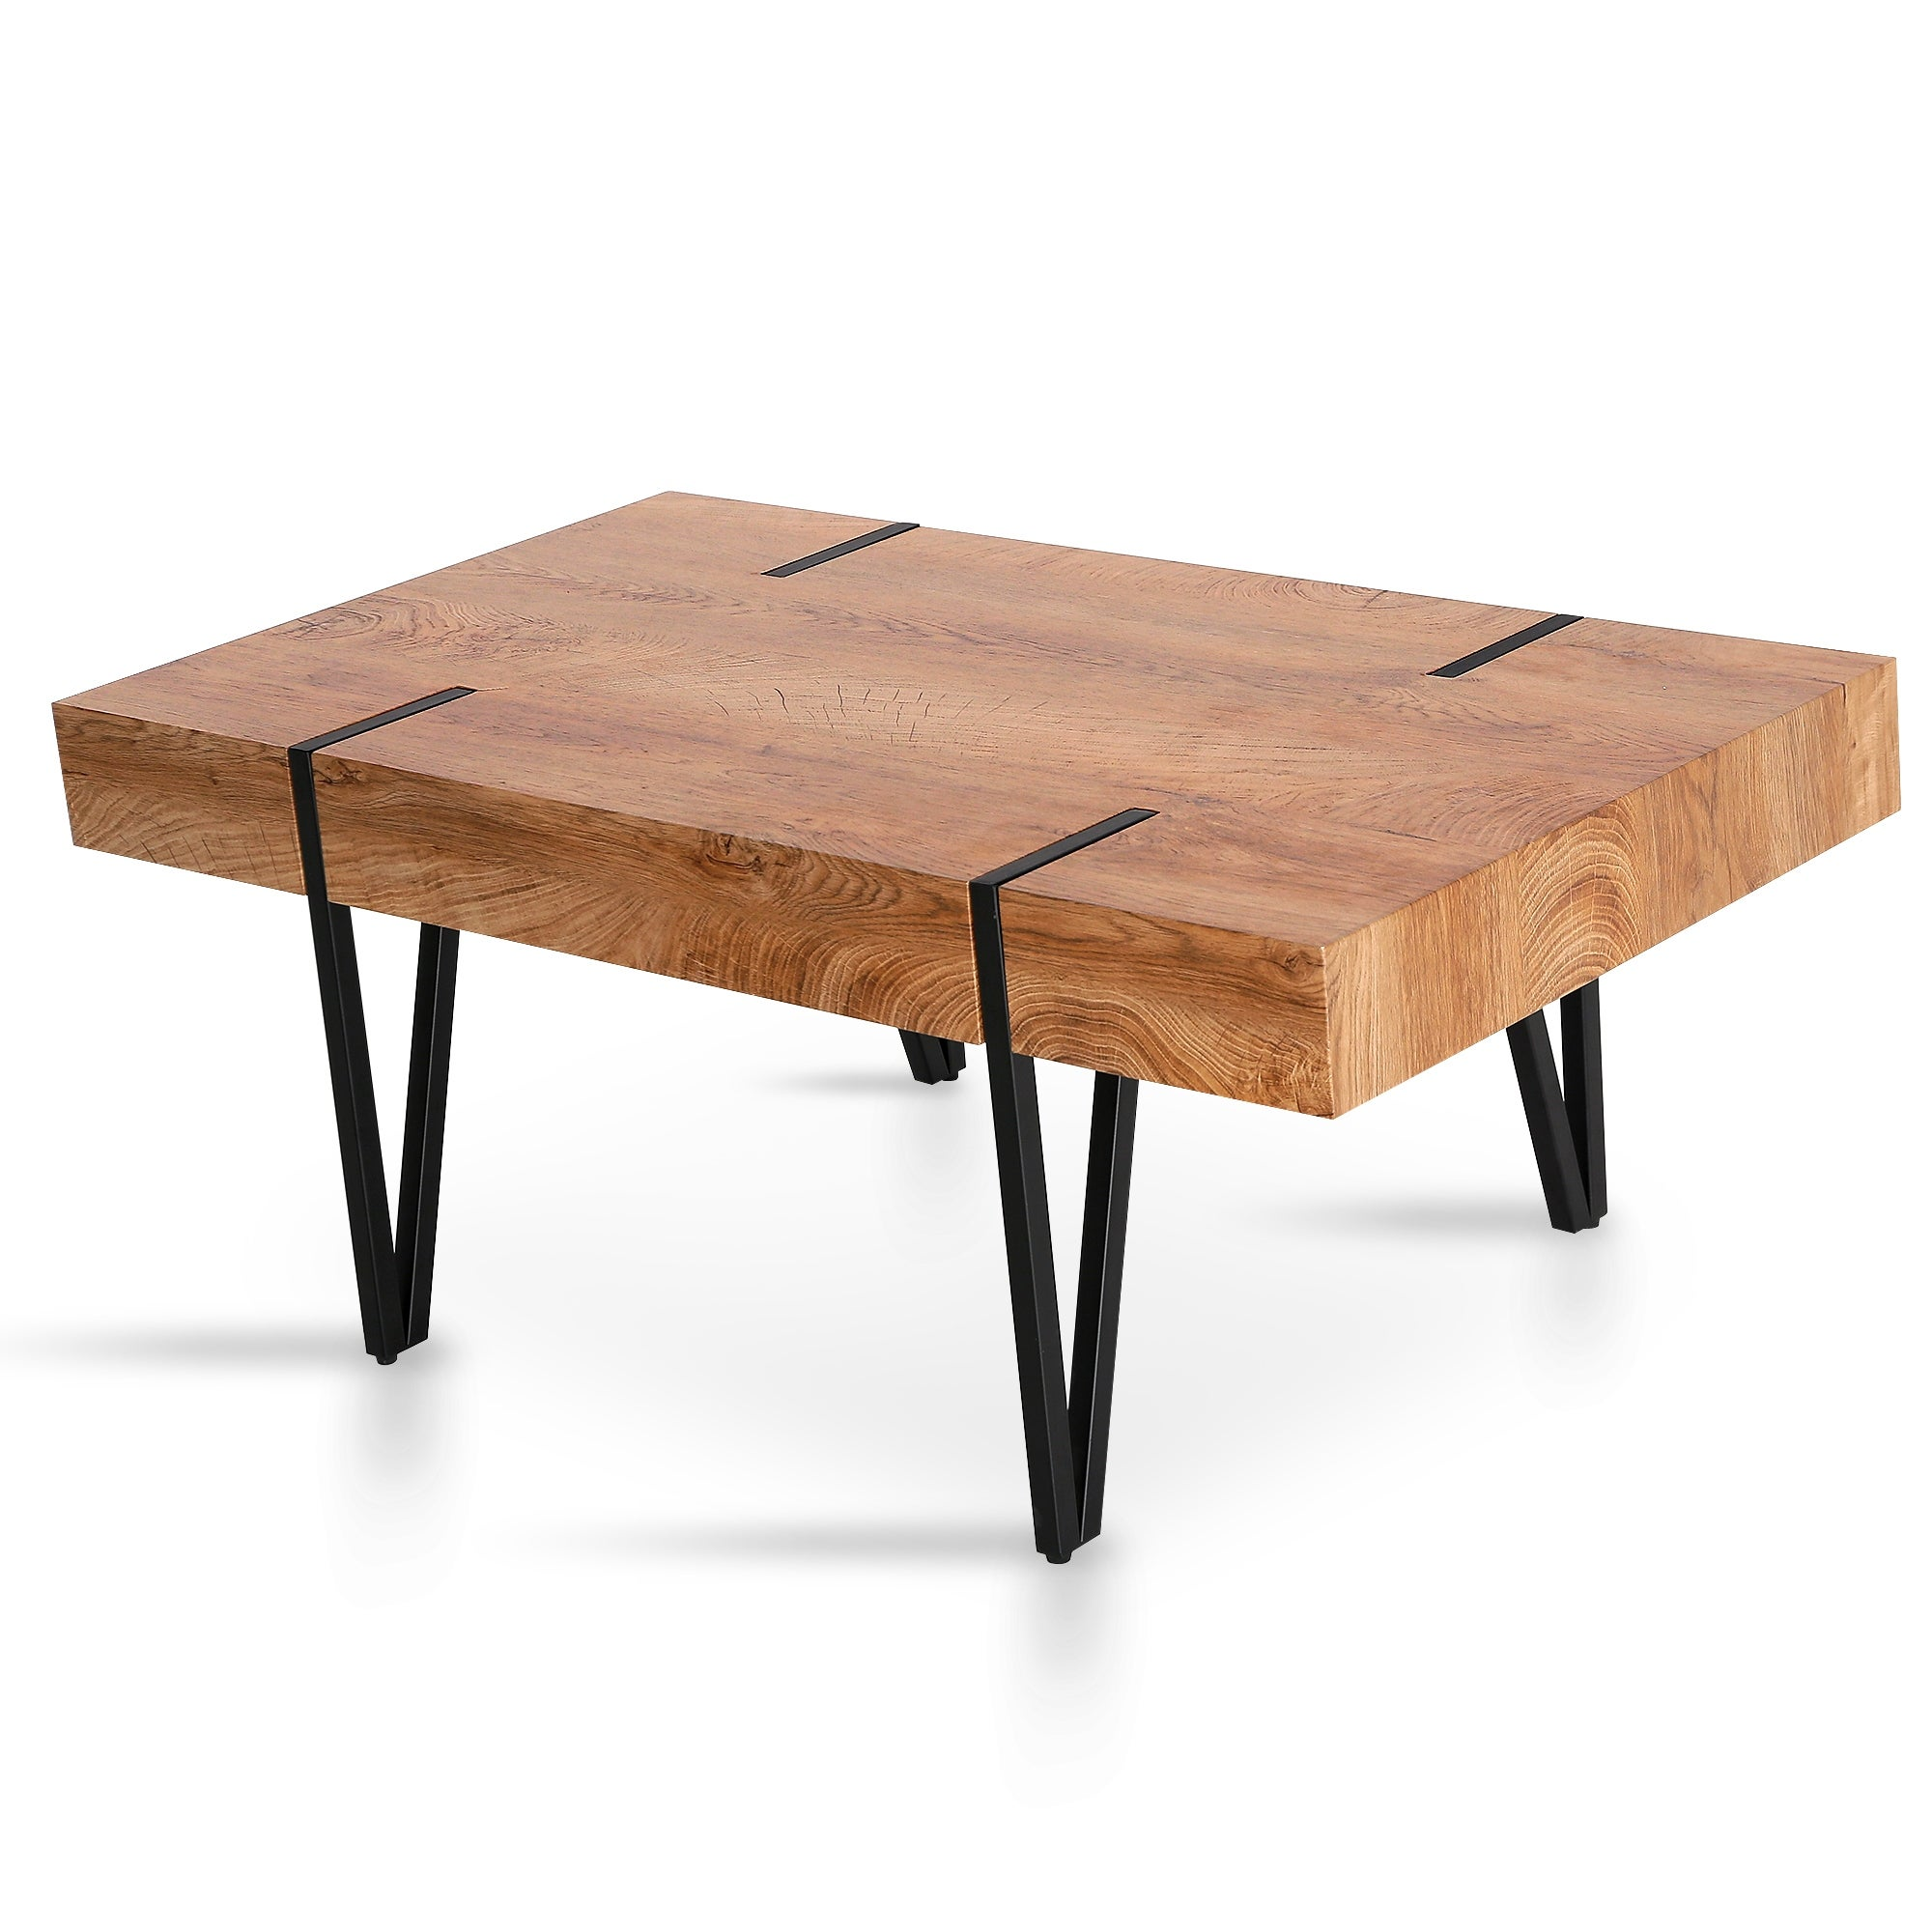 Rustic Modern Coffee Table For